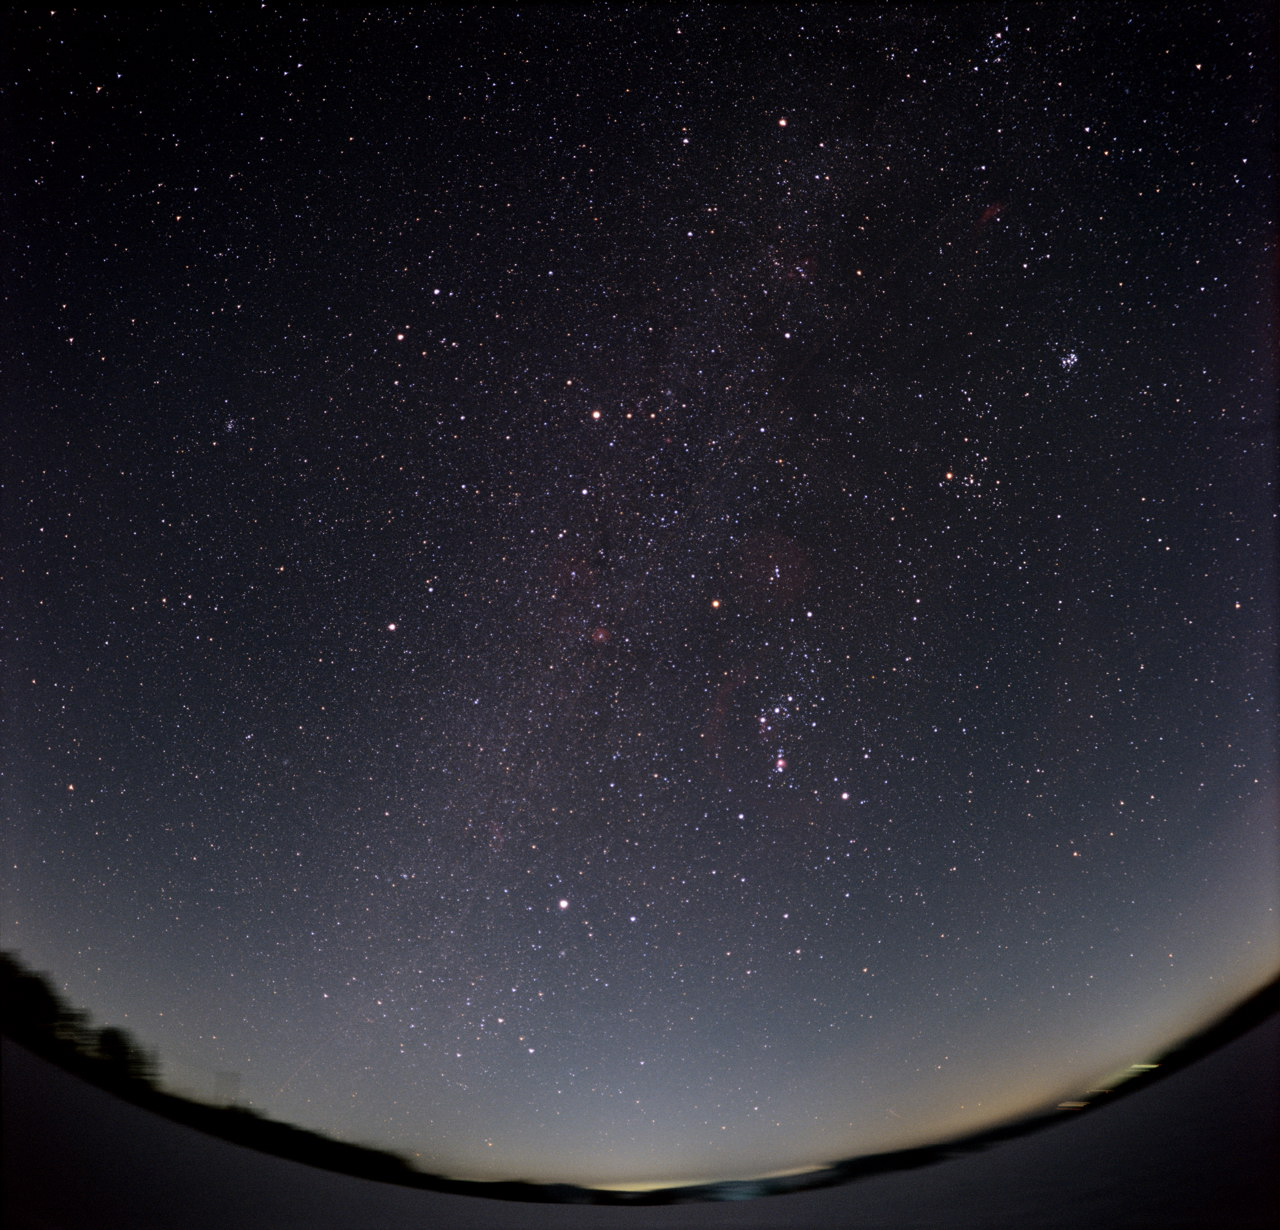 Stars and Planets in the Night Sky - Pics about space